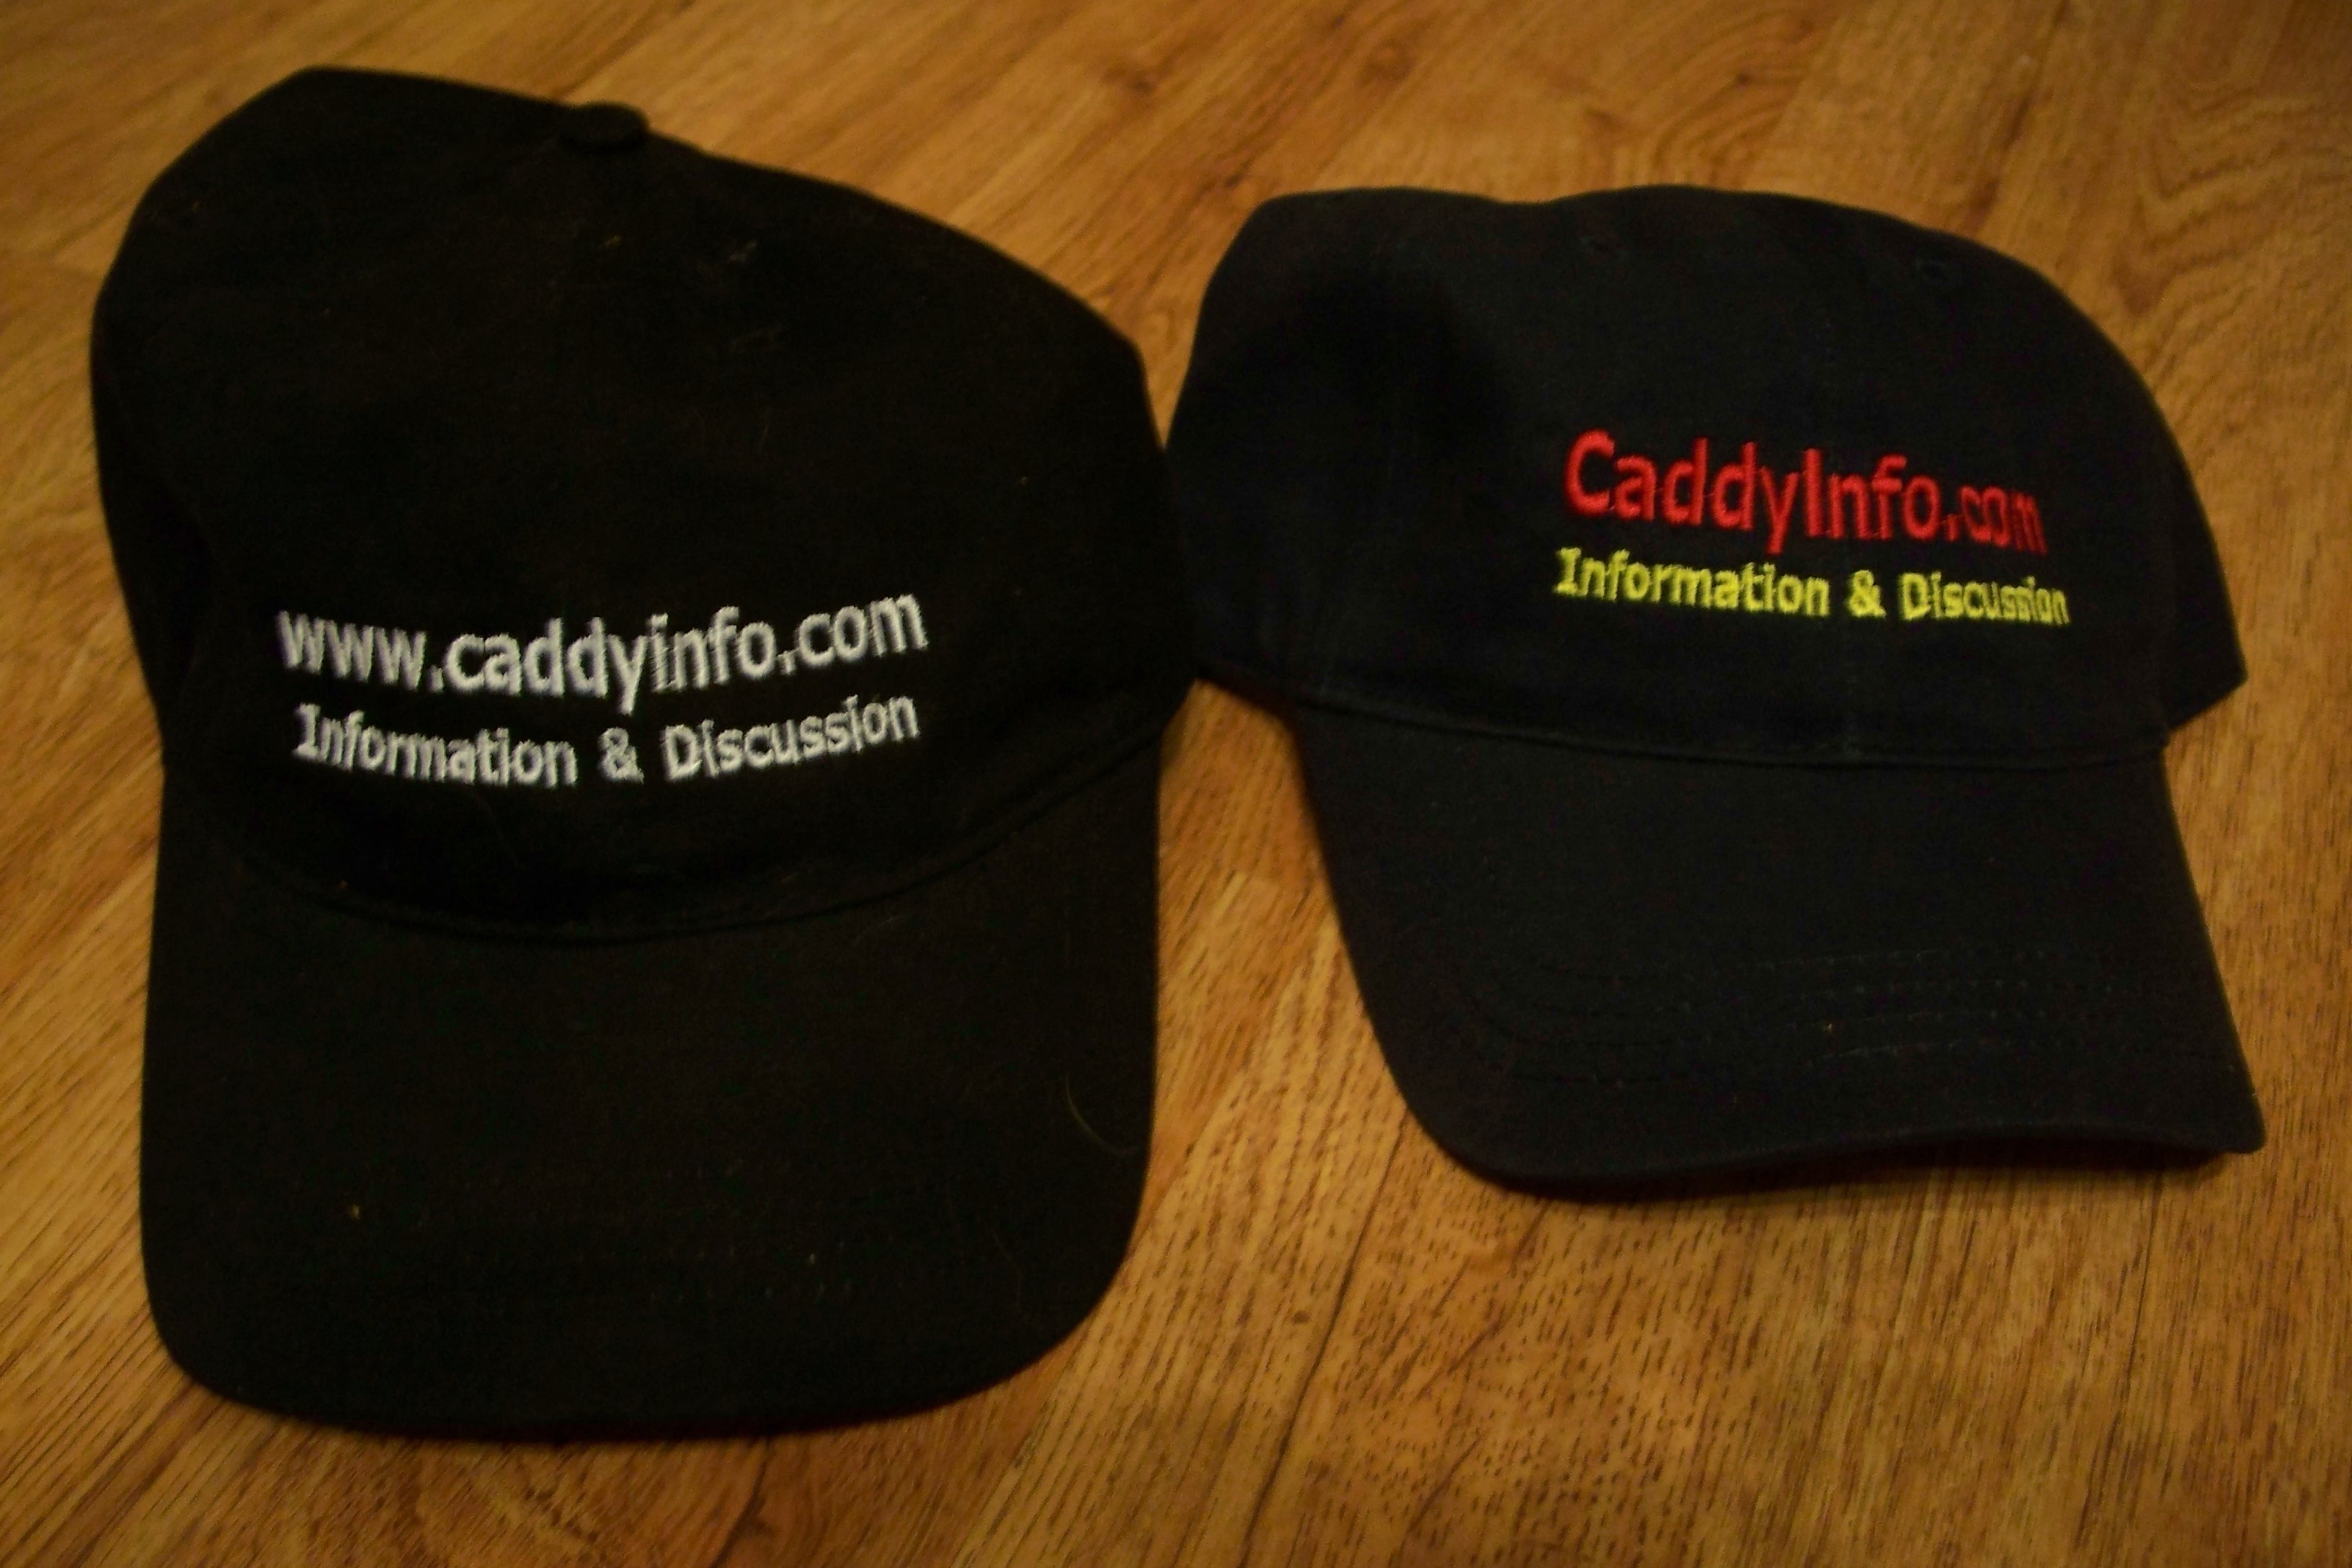 Caddyinfo Hats, Old (left) & New (right)